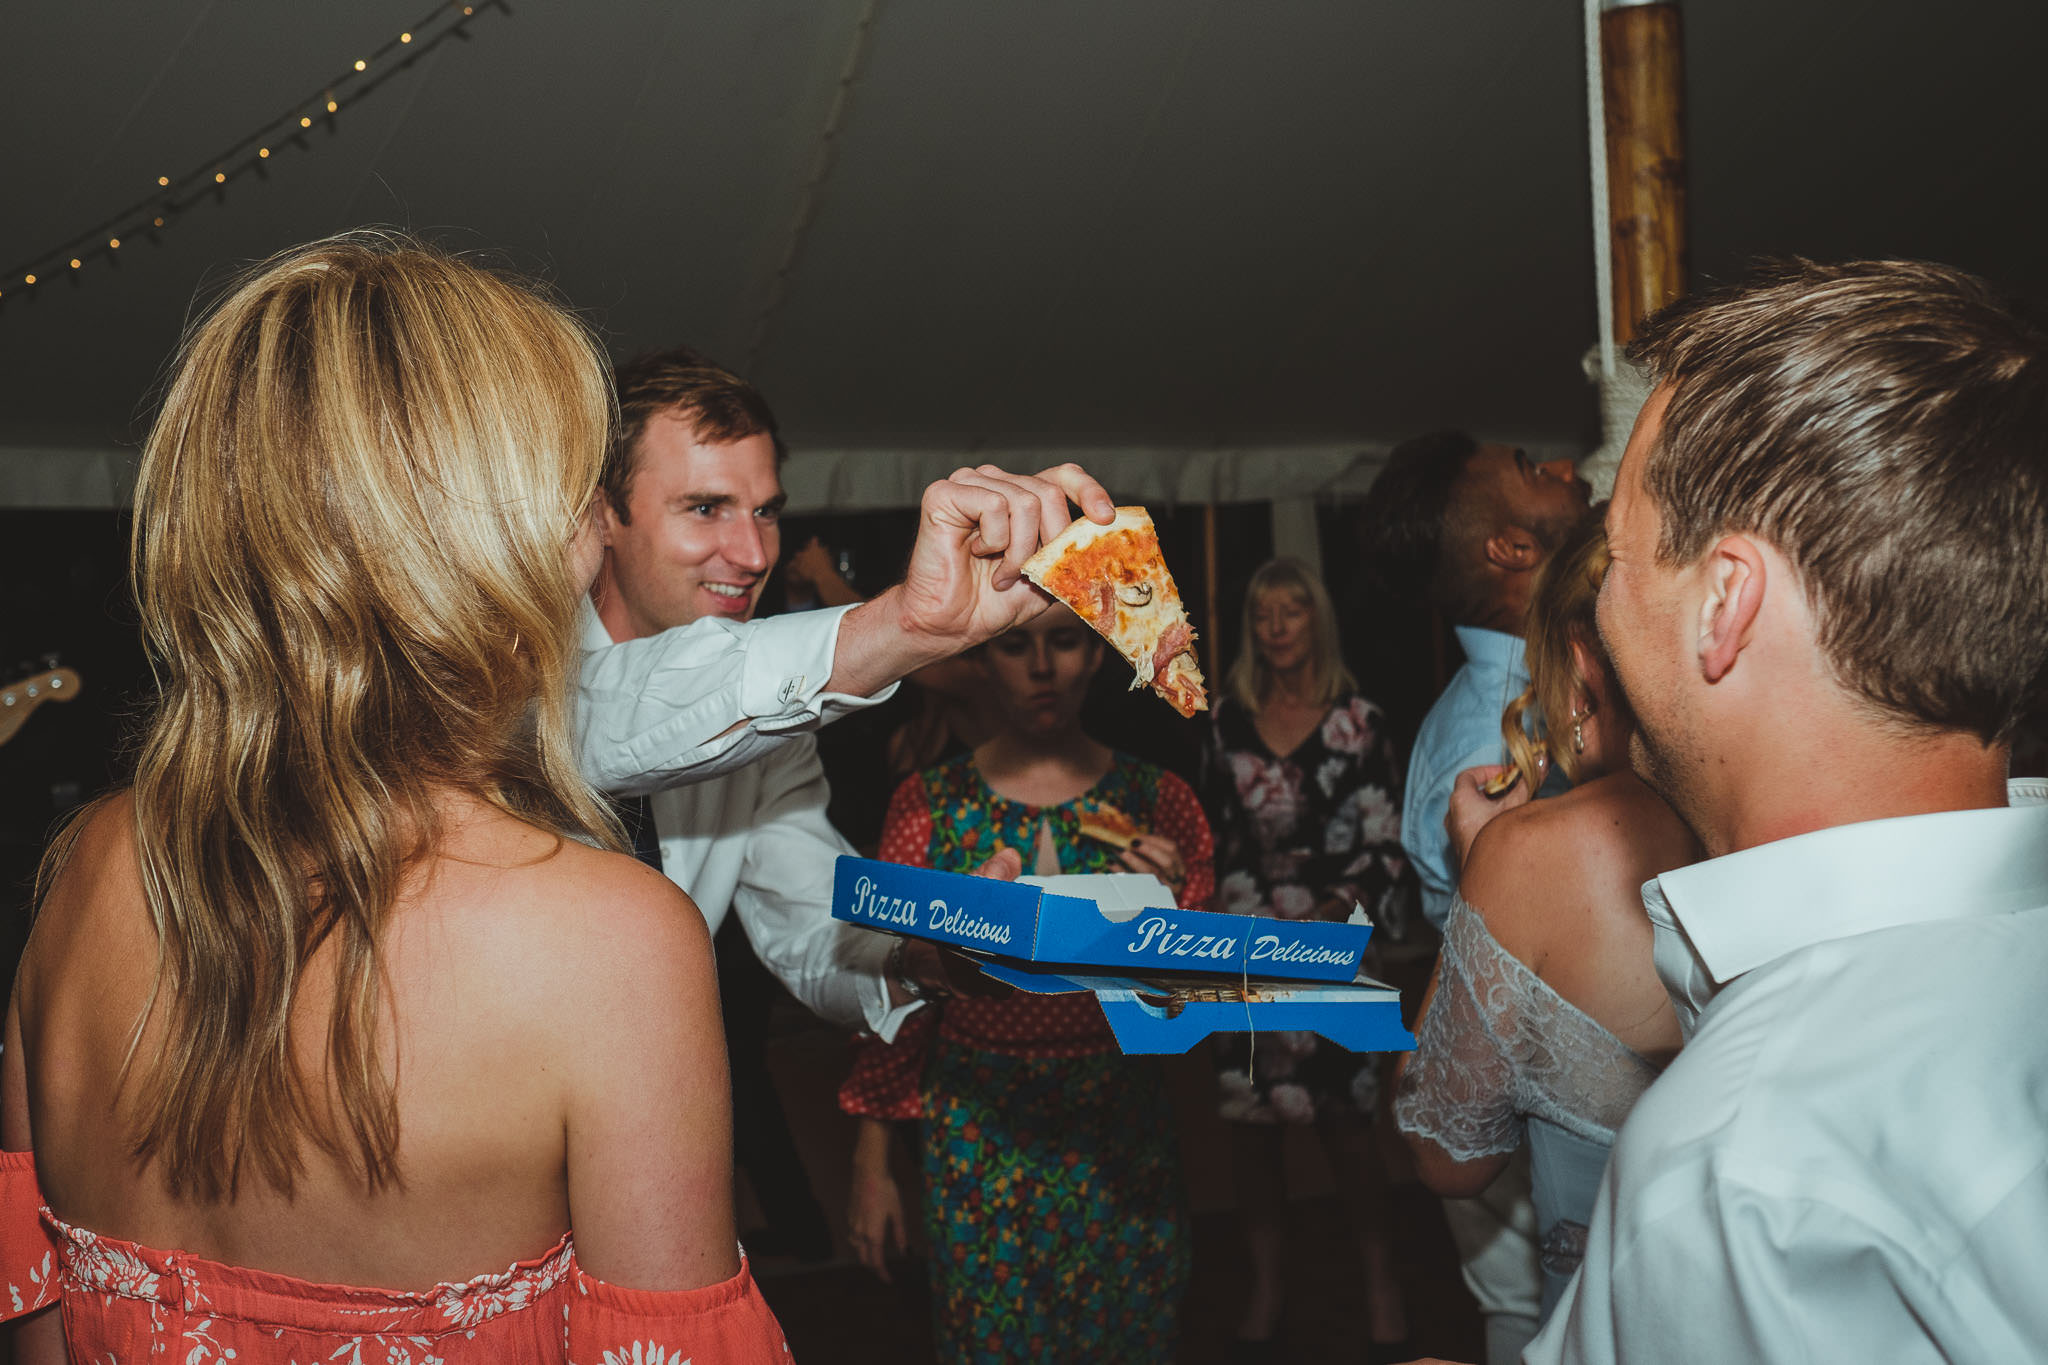 A wedding guest waves a slice of pizza on the dance floor